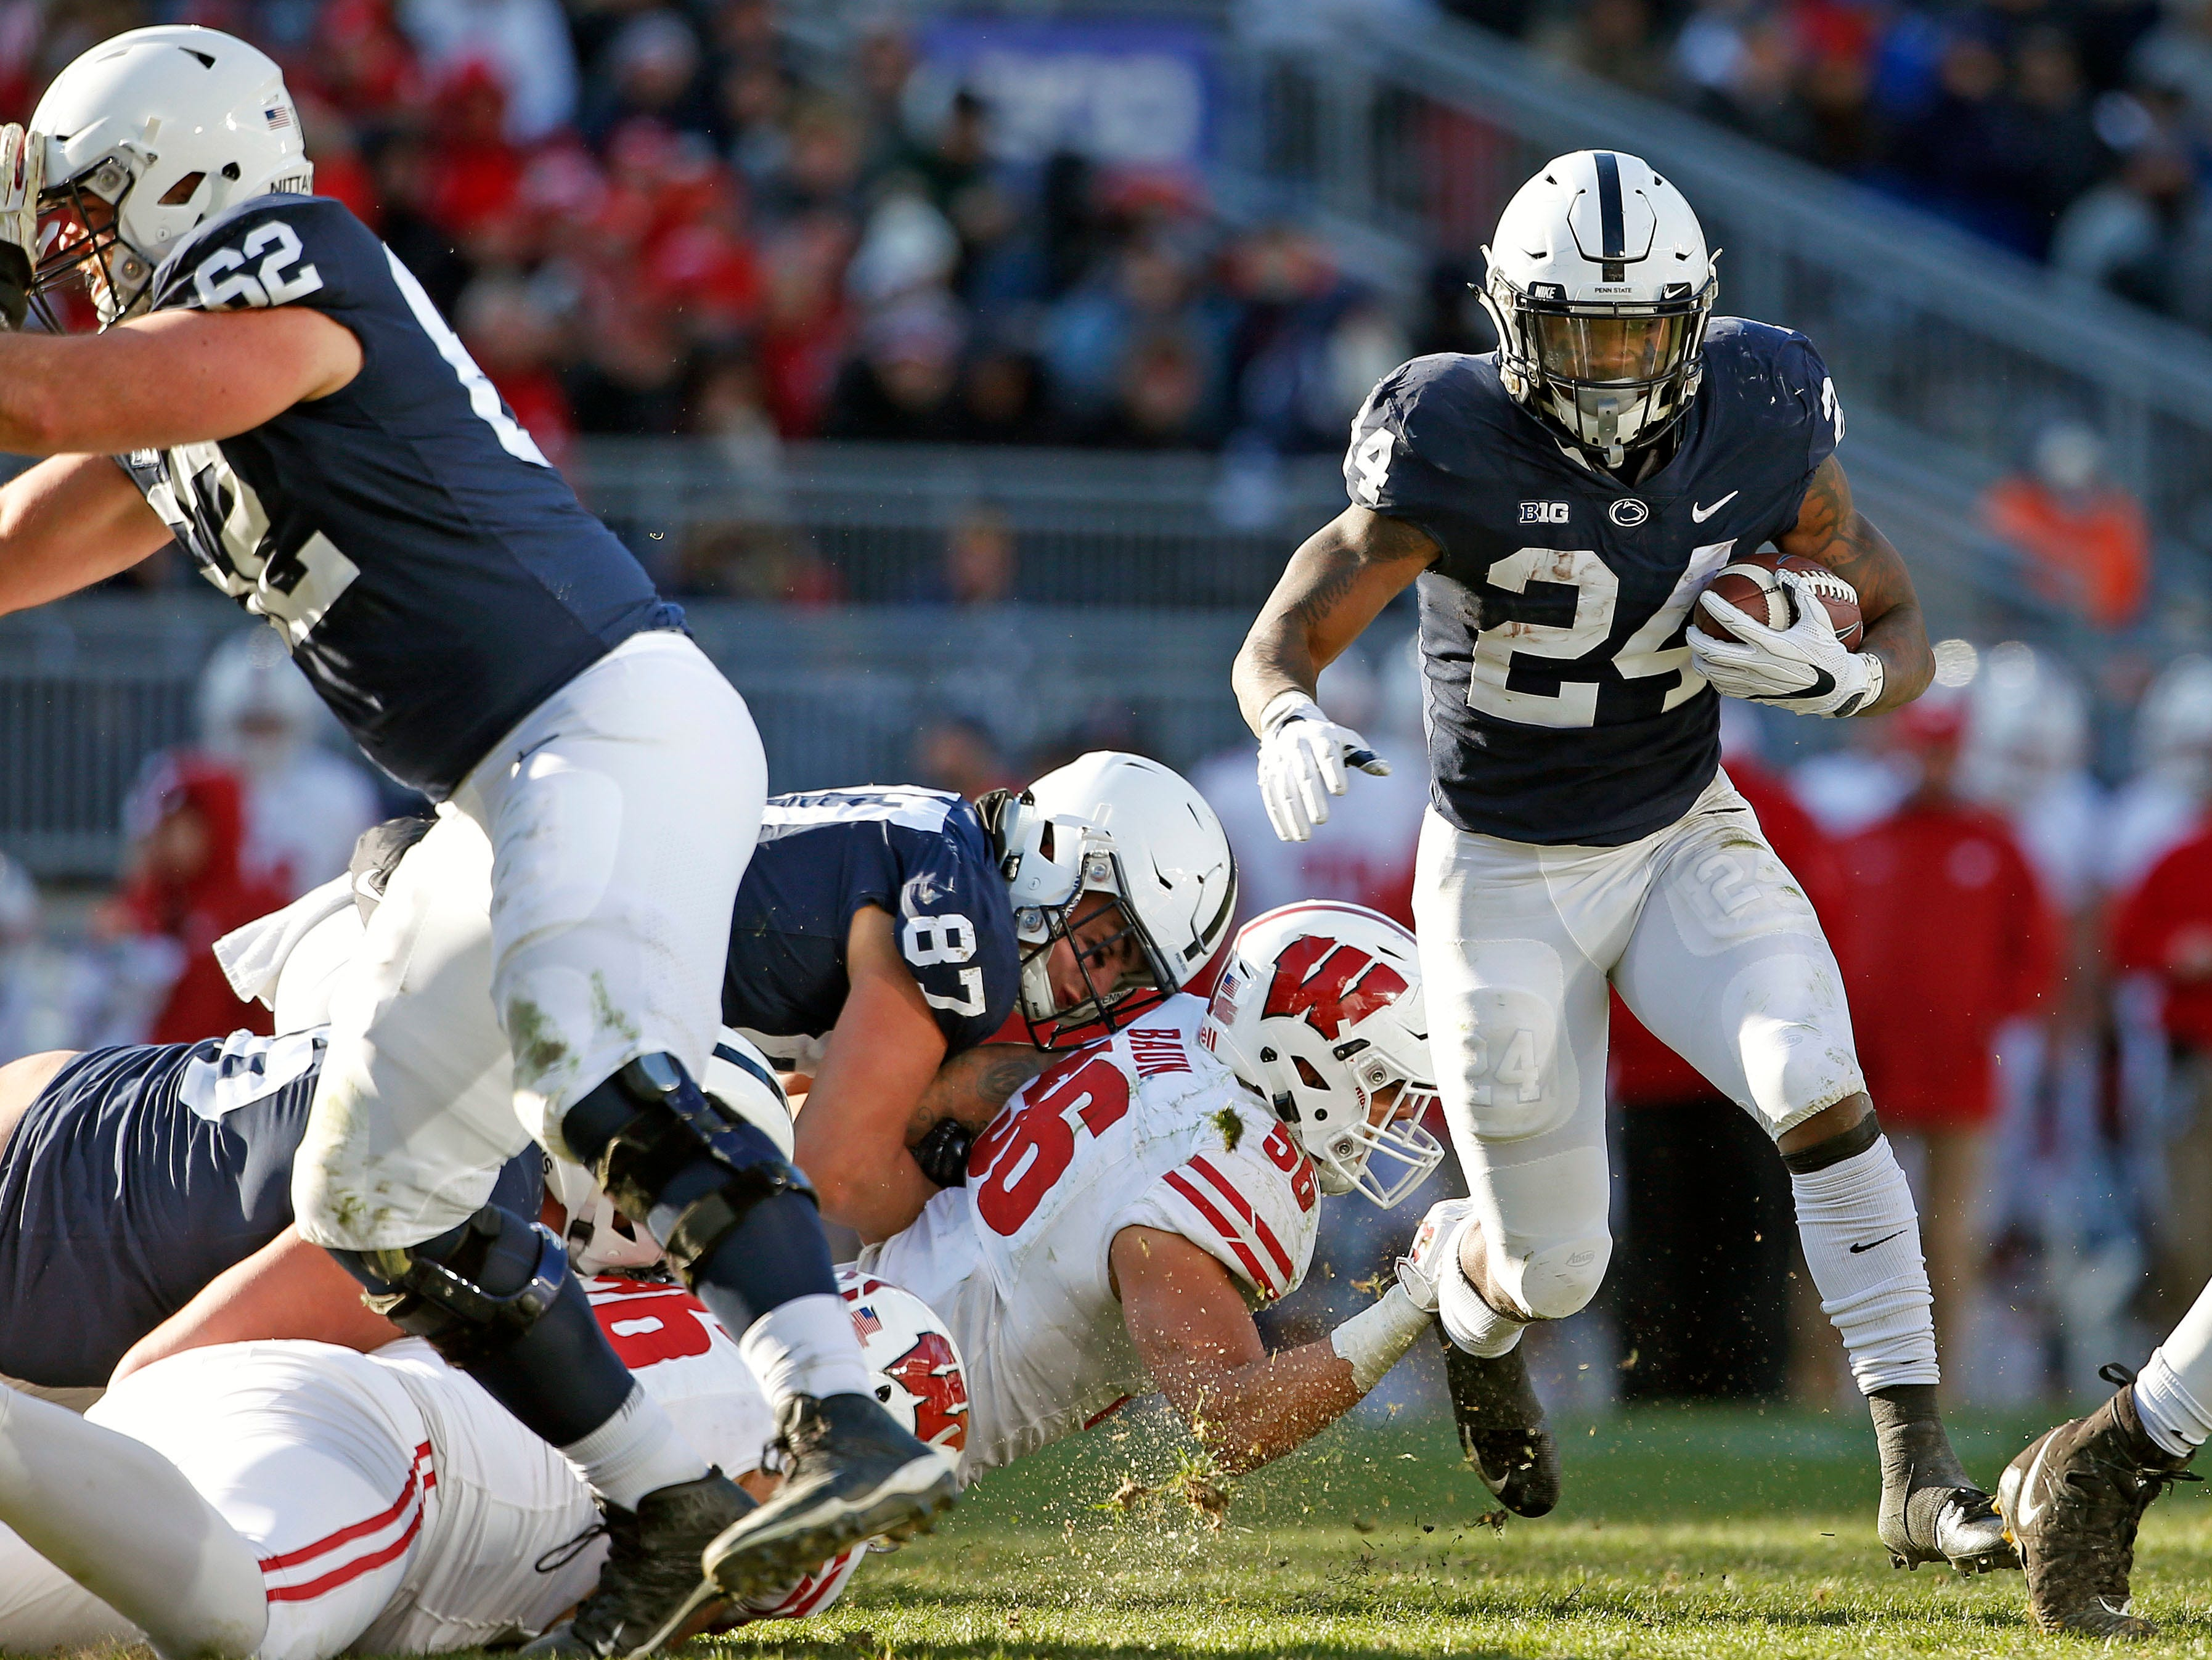 Penn State's Miles Sanders (24) gets past Wisconsin's Zack Baun (56) during the second half of an NCAA college football game in State College, Pa., Saturday, Nov. 10, 2018. Penn State won 22-10.